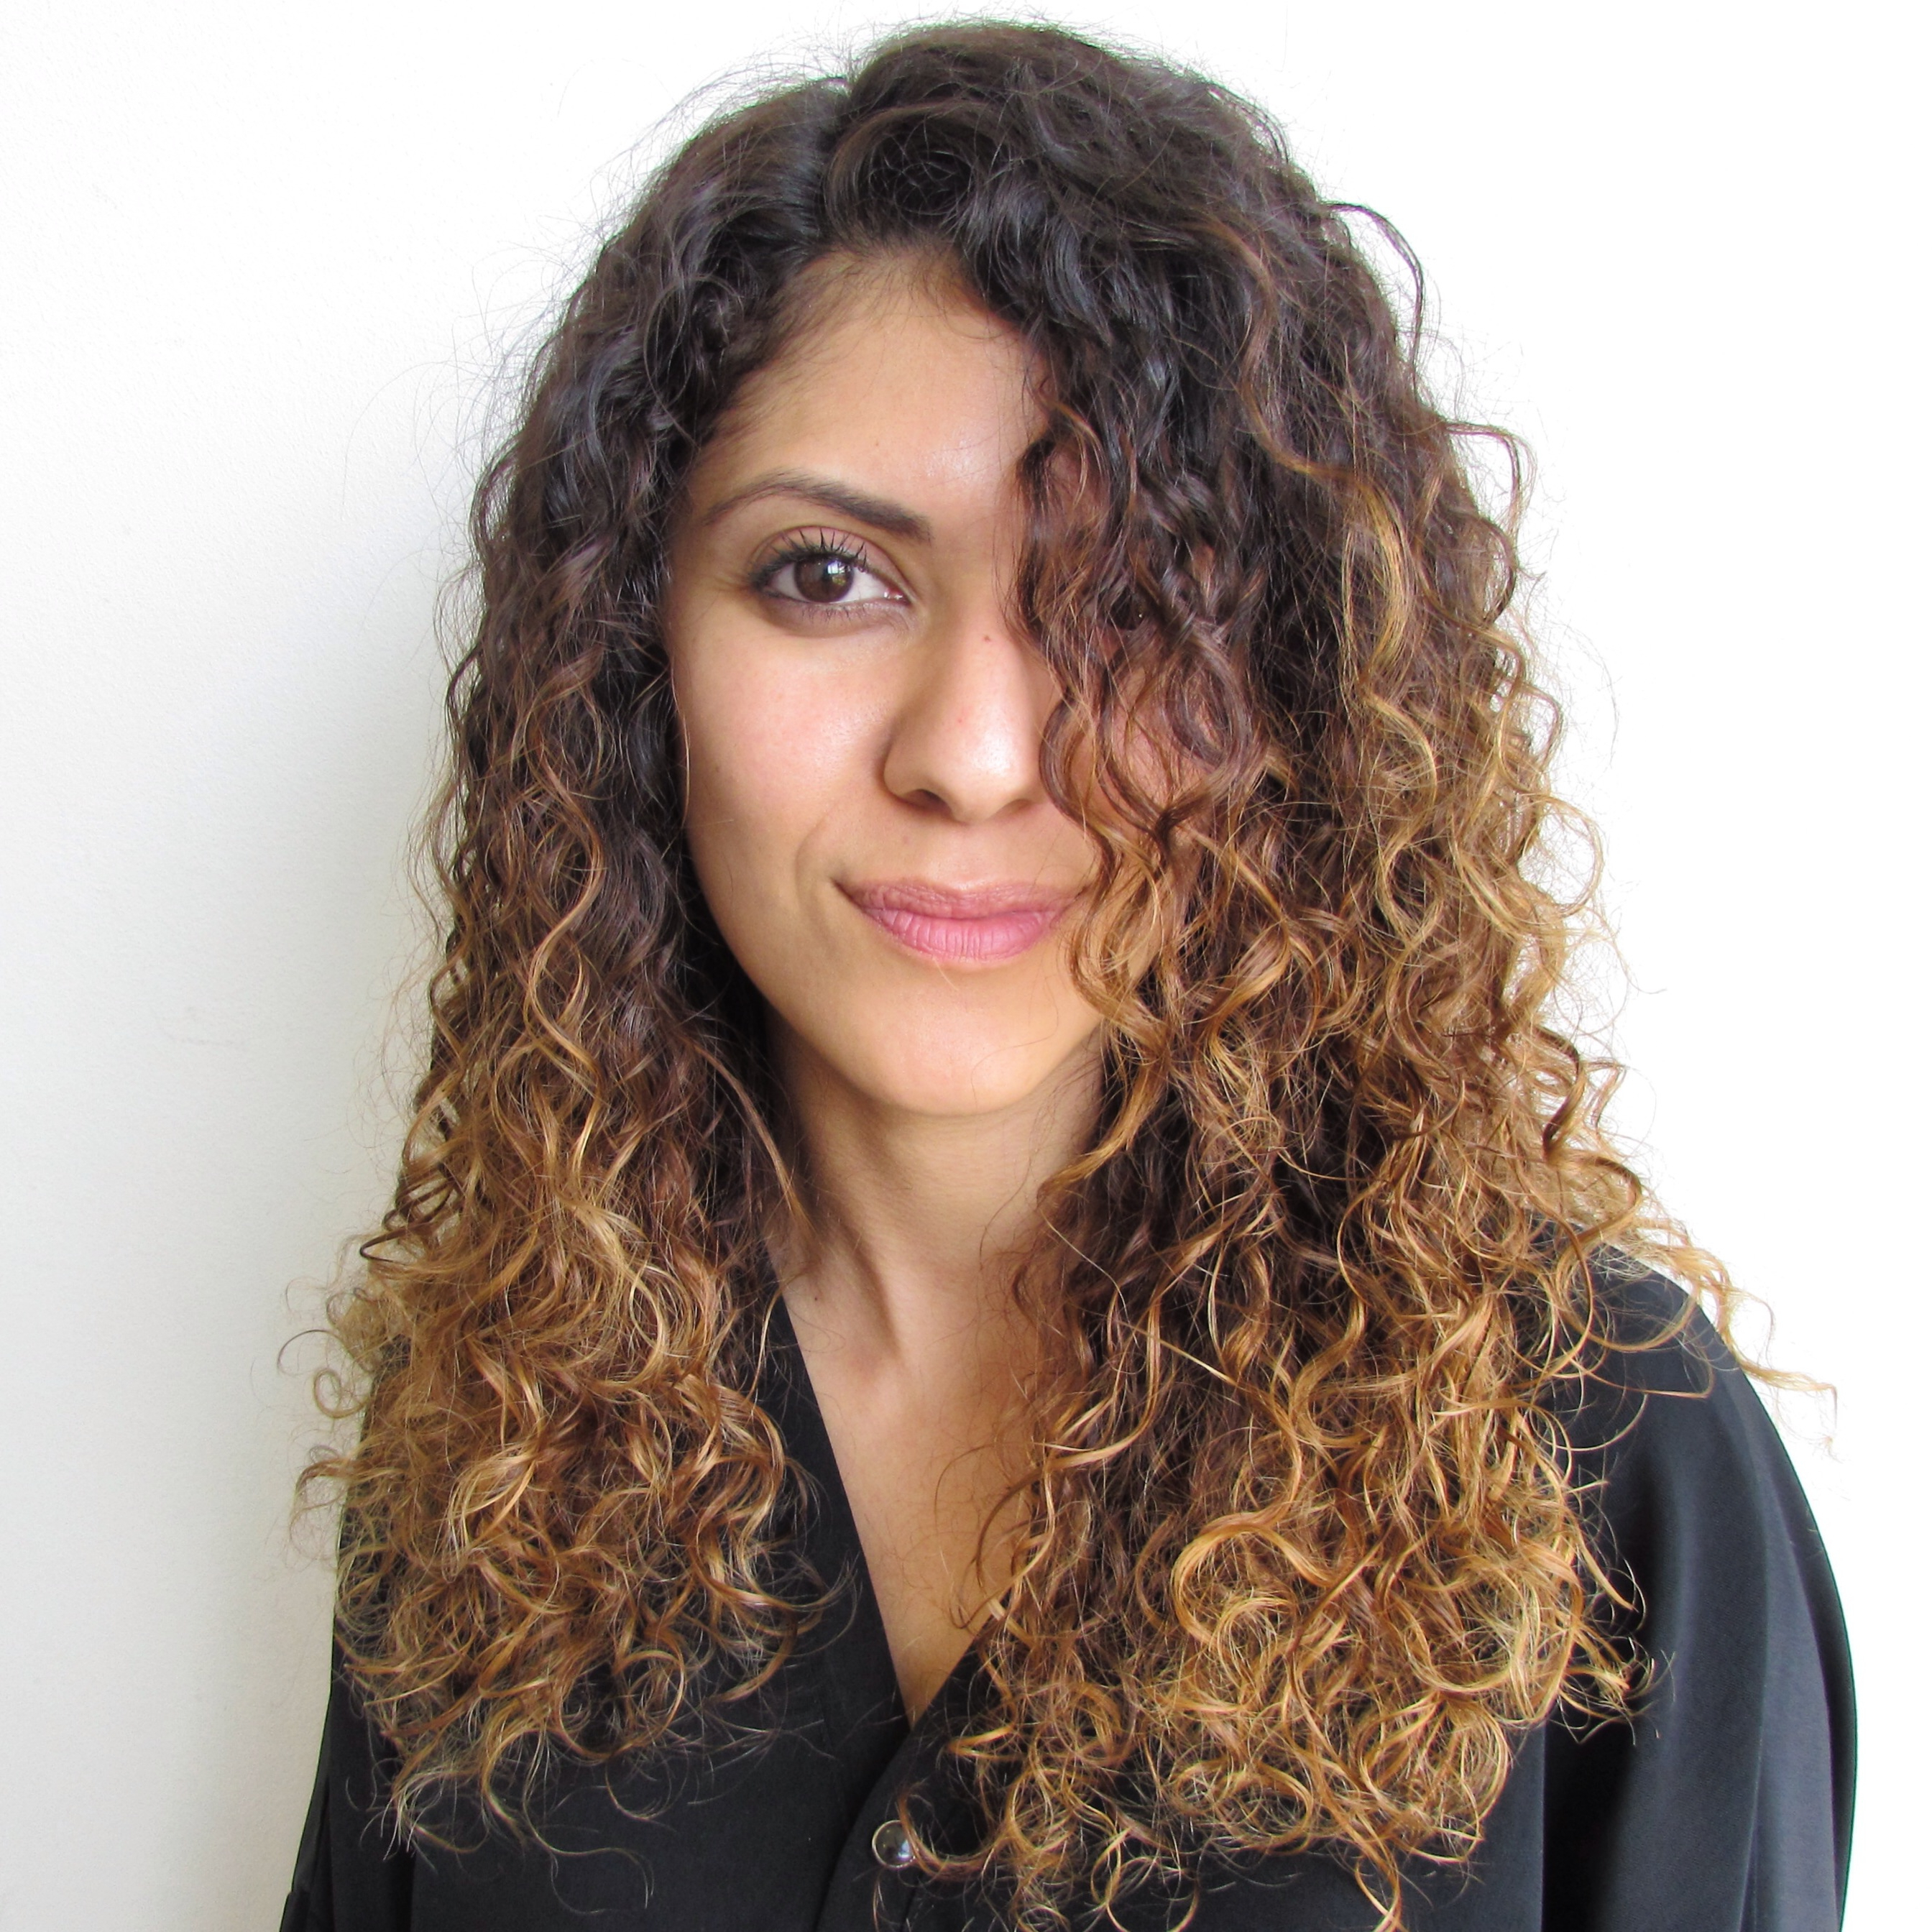 Curly Sexy Cool | Sally Hershberger Los Angeles Blog With Regard To Brown Curly Hairstyles With Highlights (View 16 of 25)